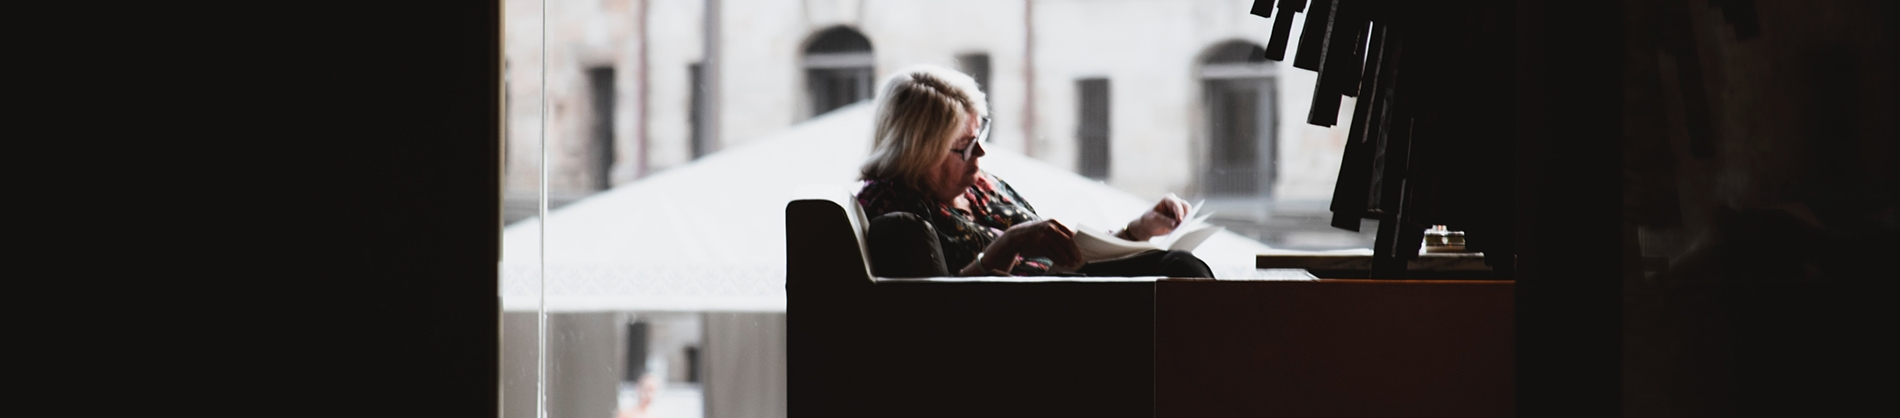 A women sat on a chair next to a window reading